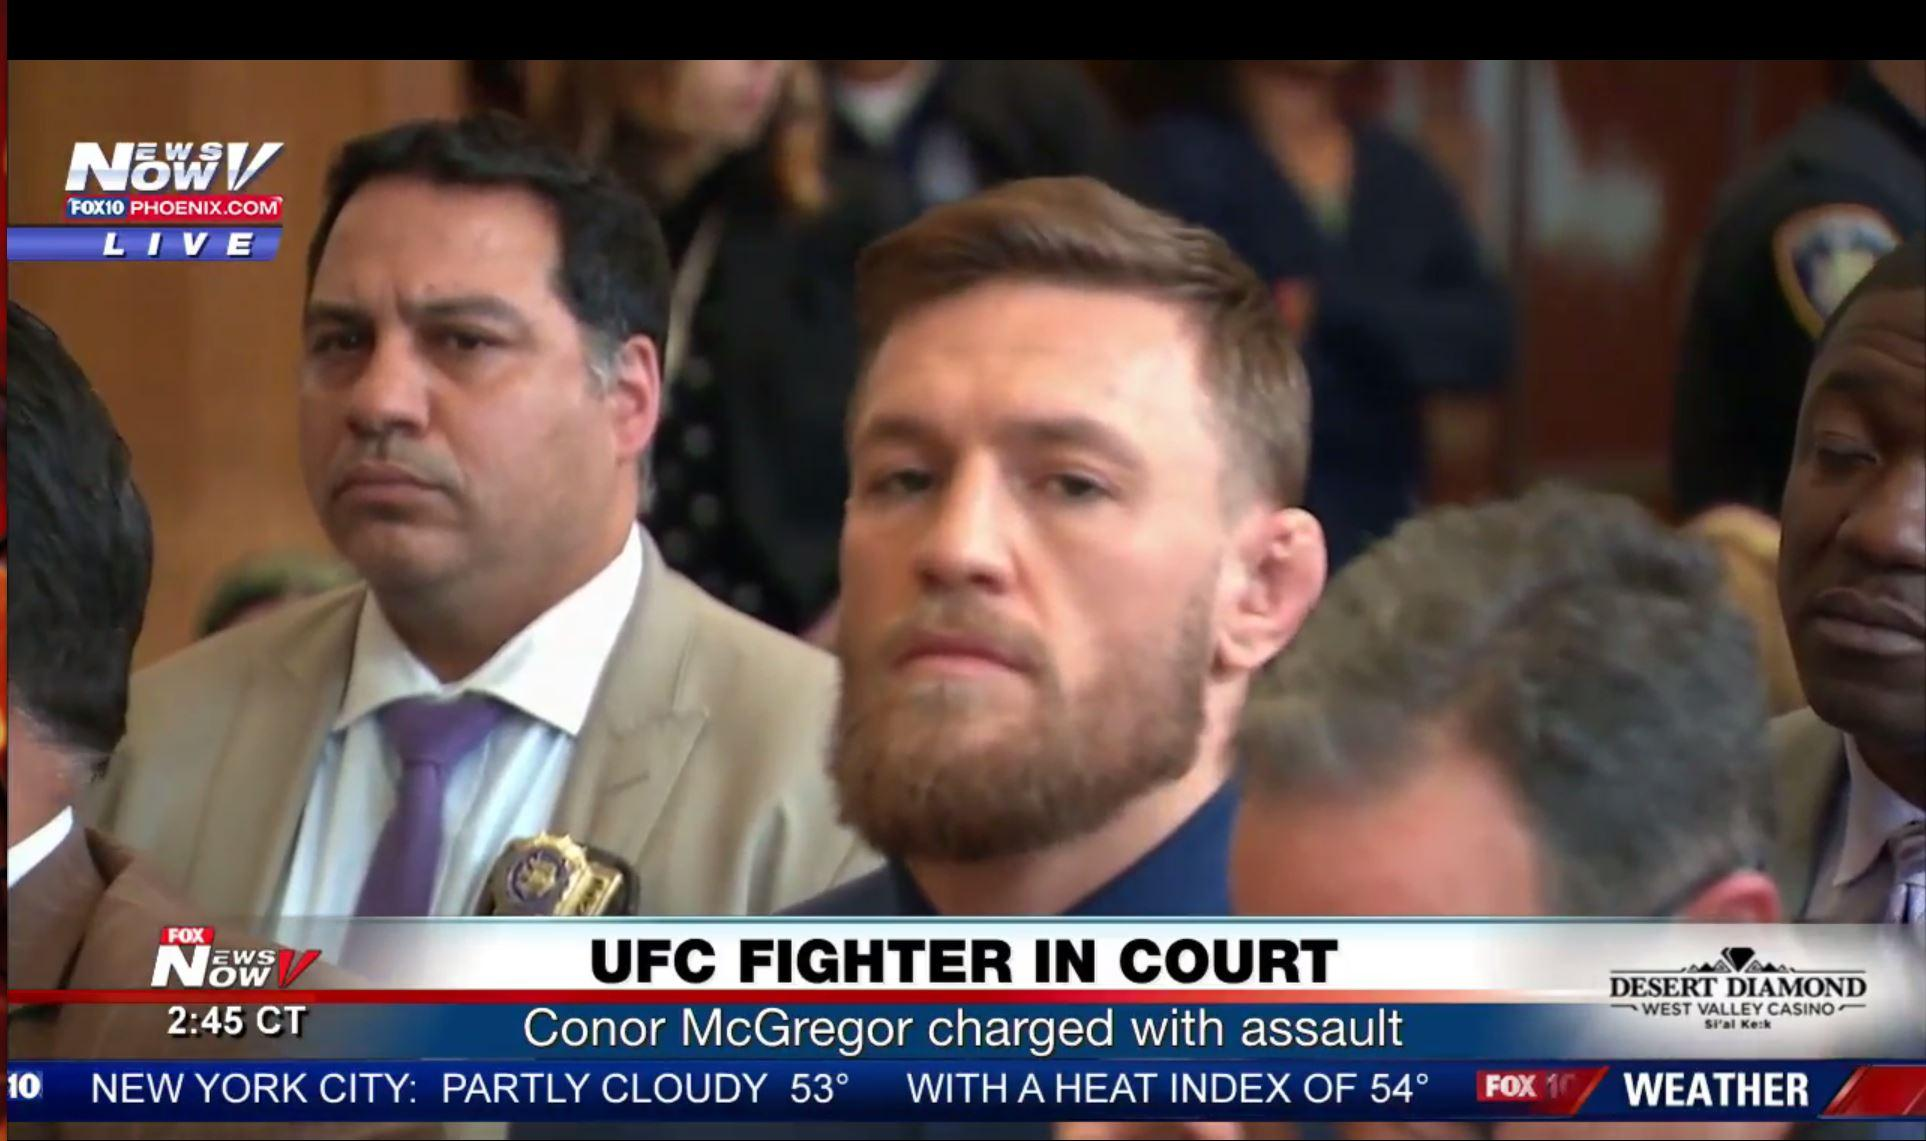 McGregor was charged with three counts of assault and one of criminal mischief